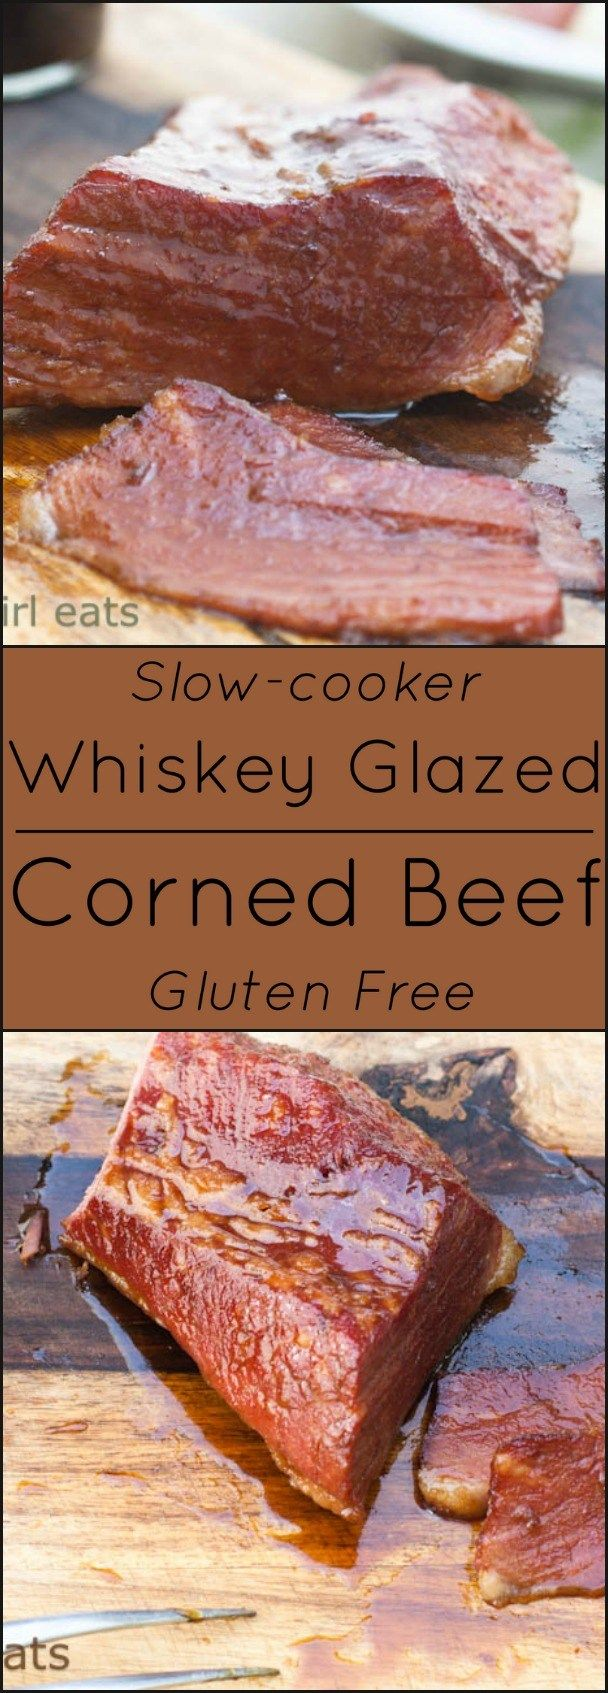 Triple Whiskey Glazed Corned Beef. Slow-cooker and gluten free.